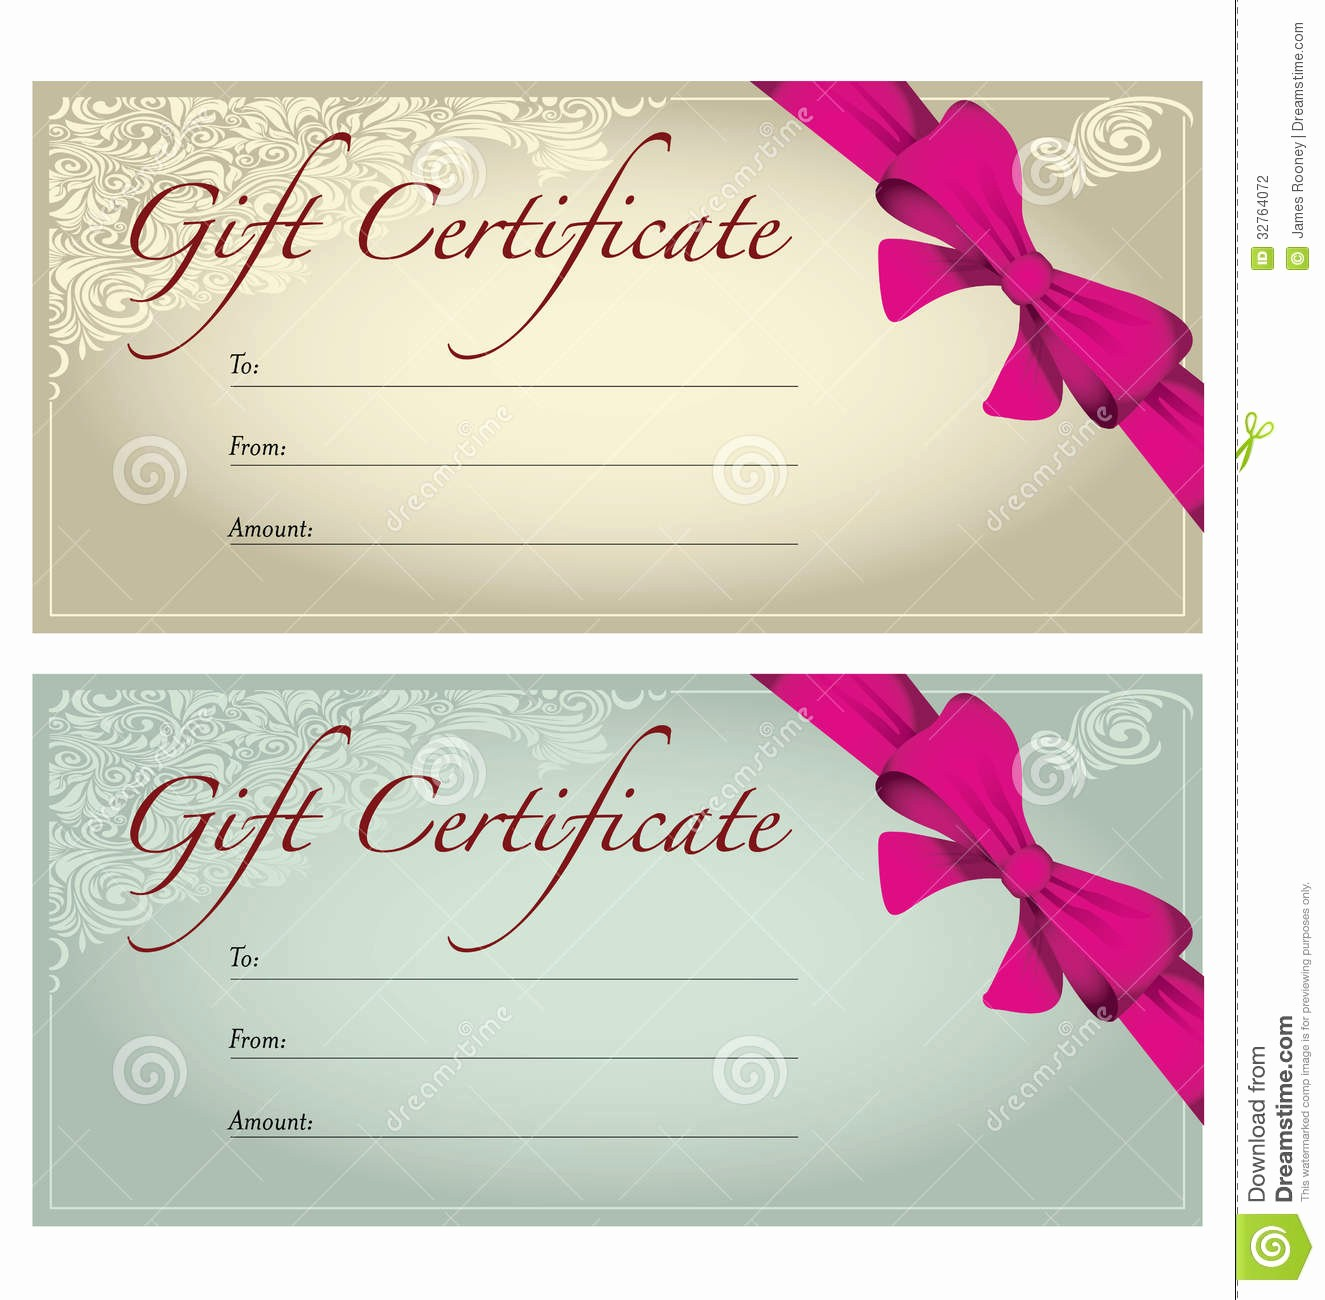 Free Gift Card Template Download Elegant Gift Certificate Template